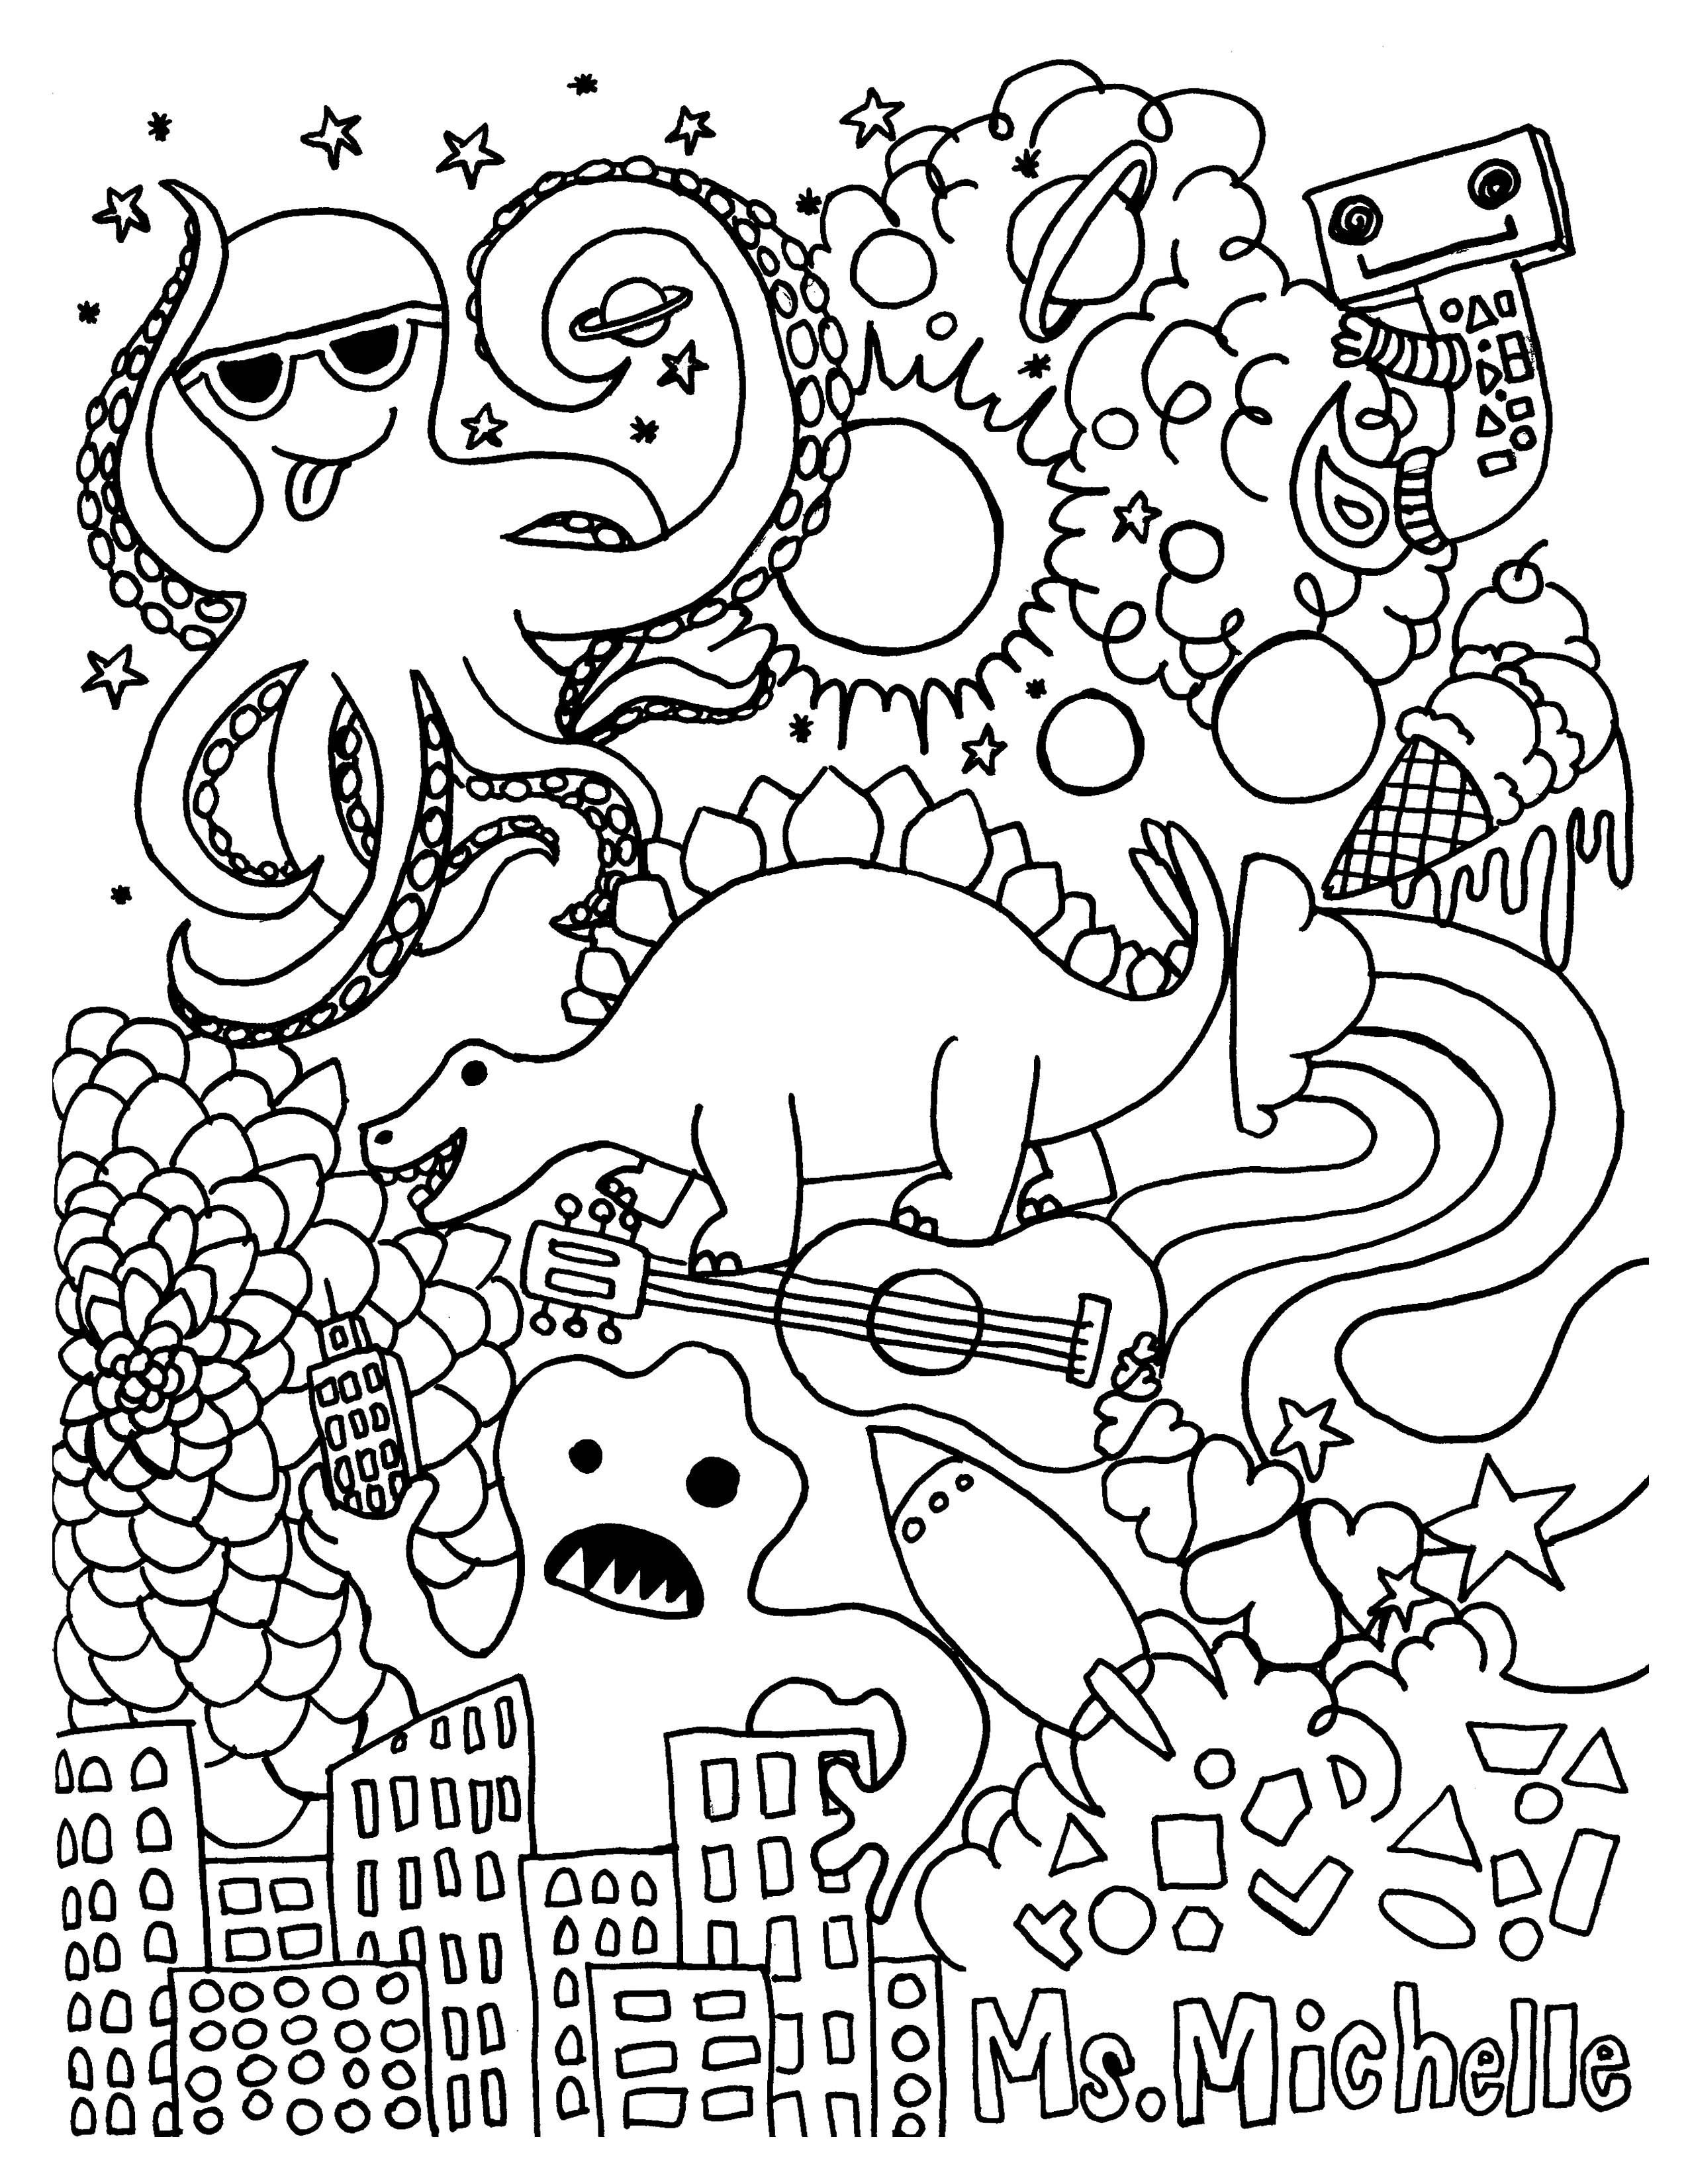 Cool Coloring Pages Free Http Www Wallpaperartdesignhd Us Cool Coloring Pages Free Princess Coloring Pages Fall Coloring Pages Disney Princess Coloring Pages